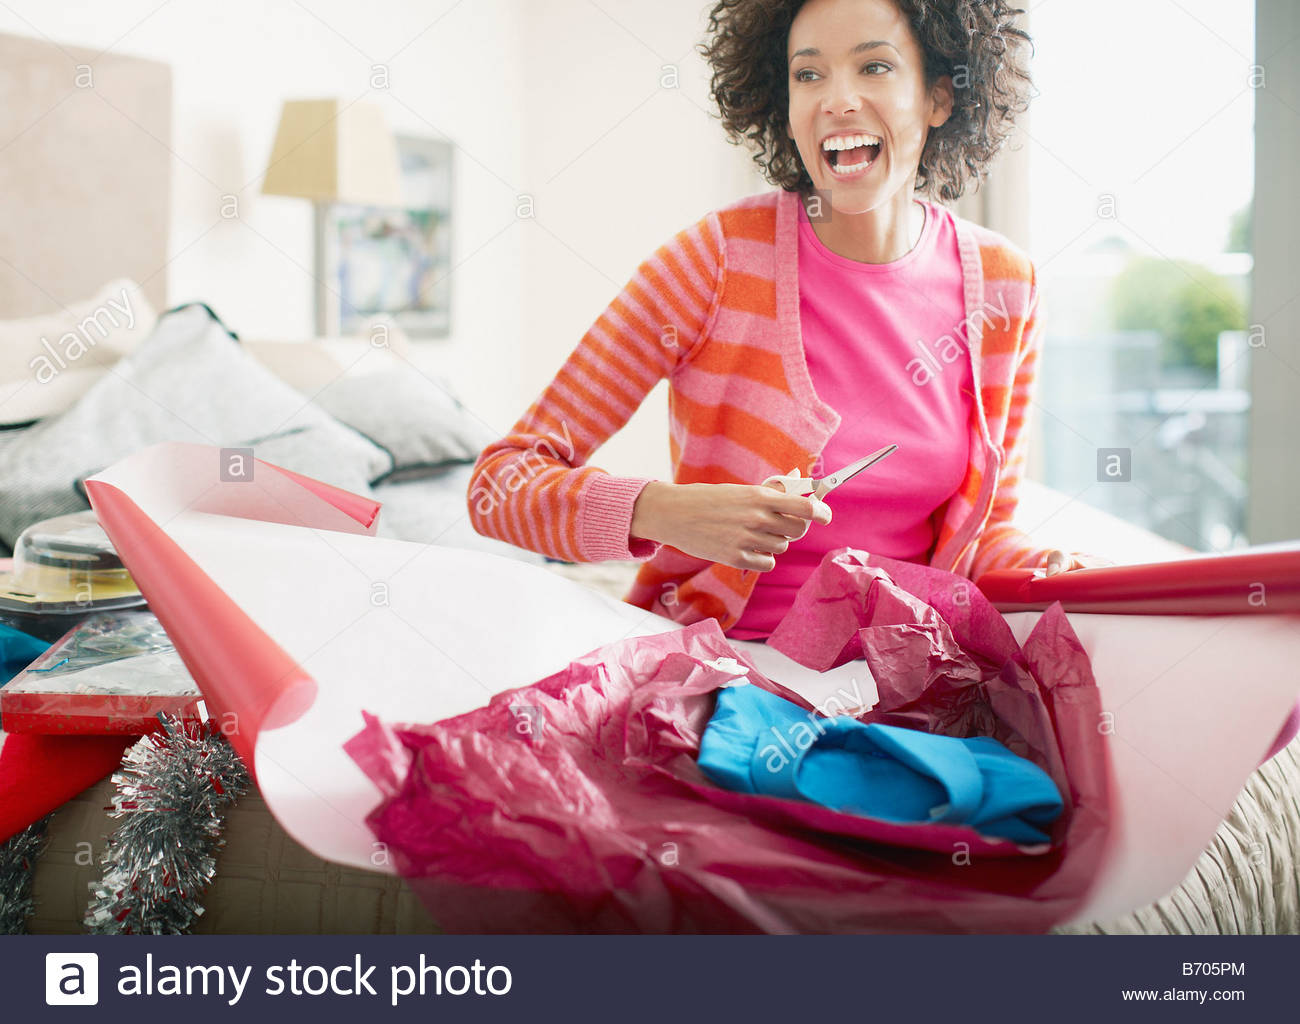 Woman wrapping Christmas gift - Stock Image